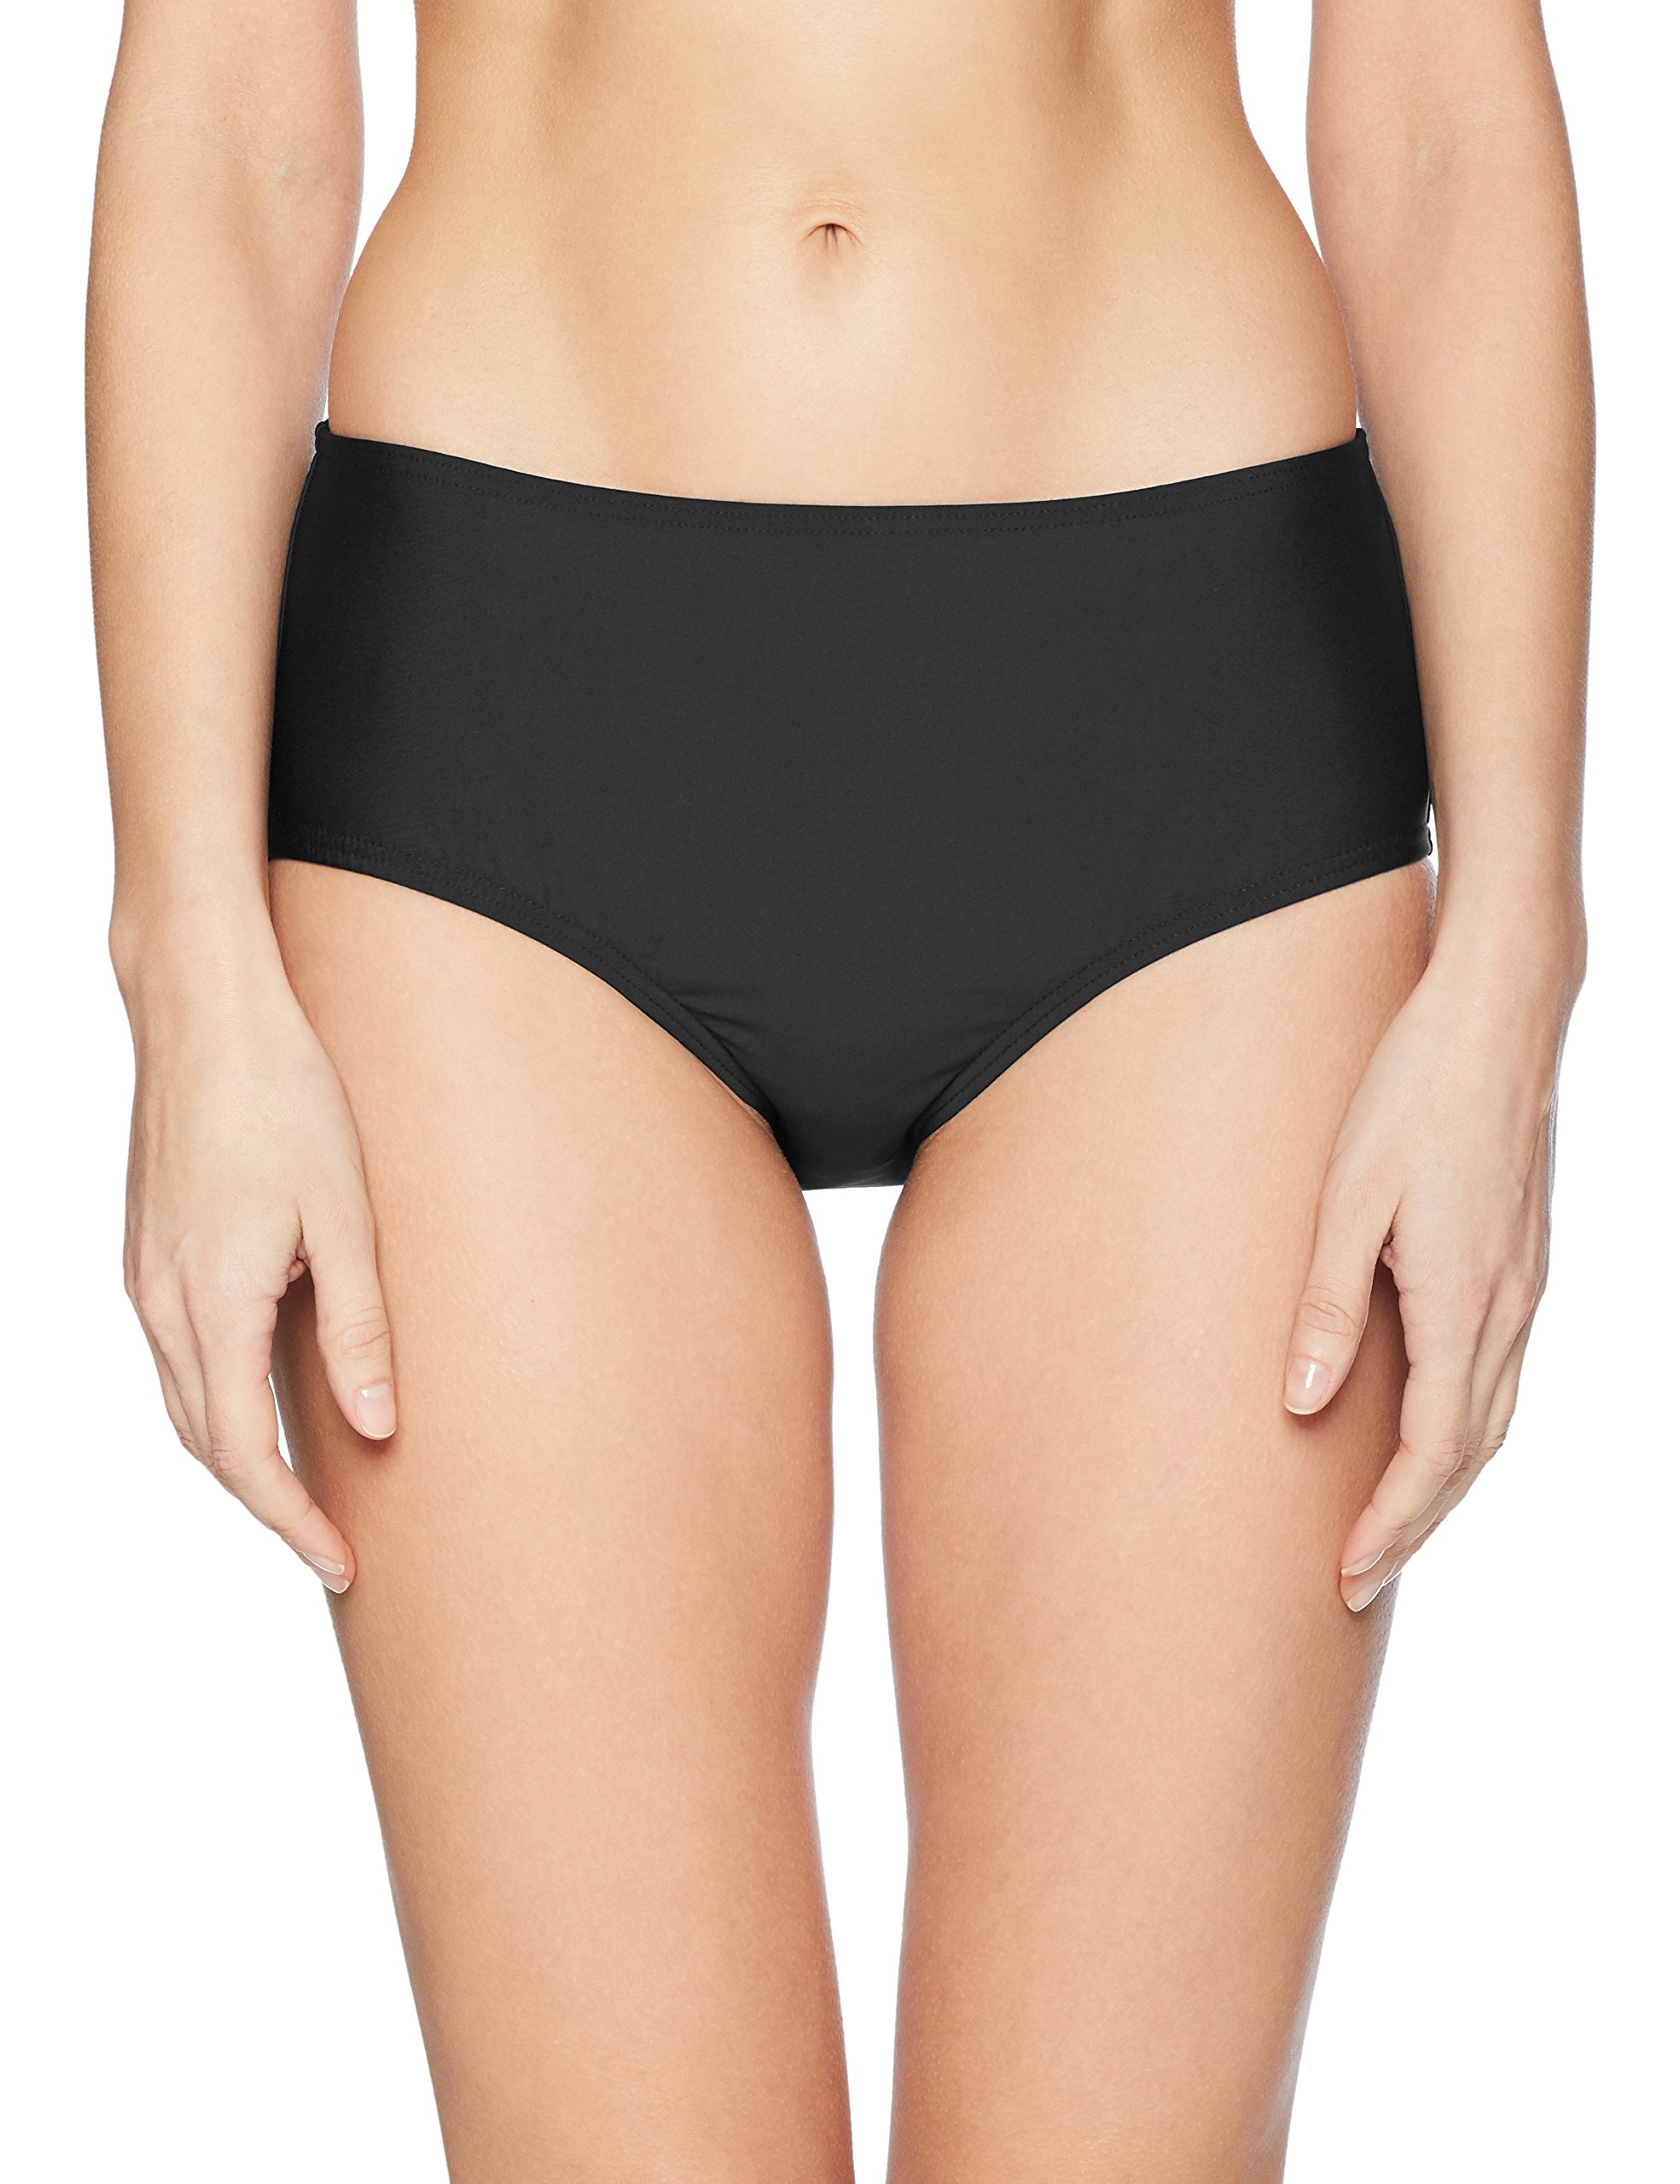 Calvin Klein Women's Classic Mid Rise Bottom with Tummy Control, Black, Large by Calvin Klein